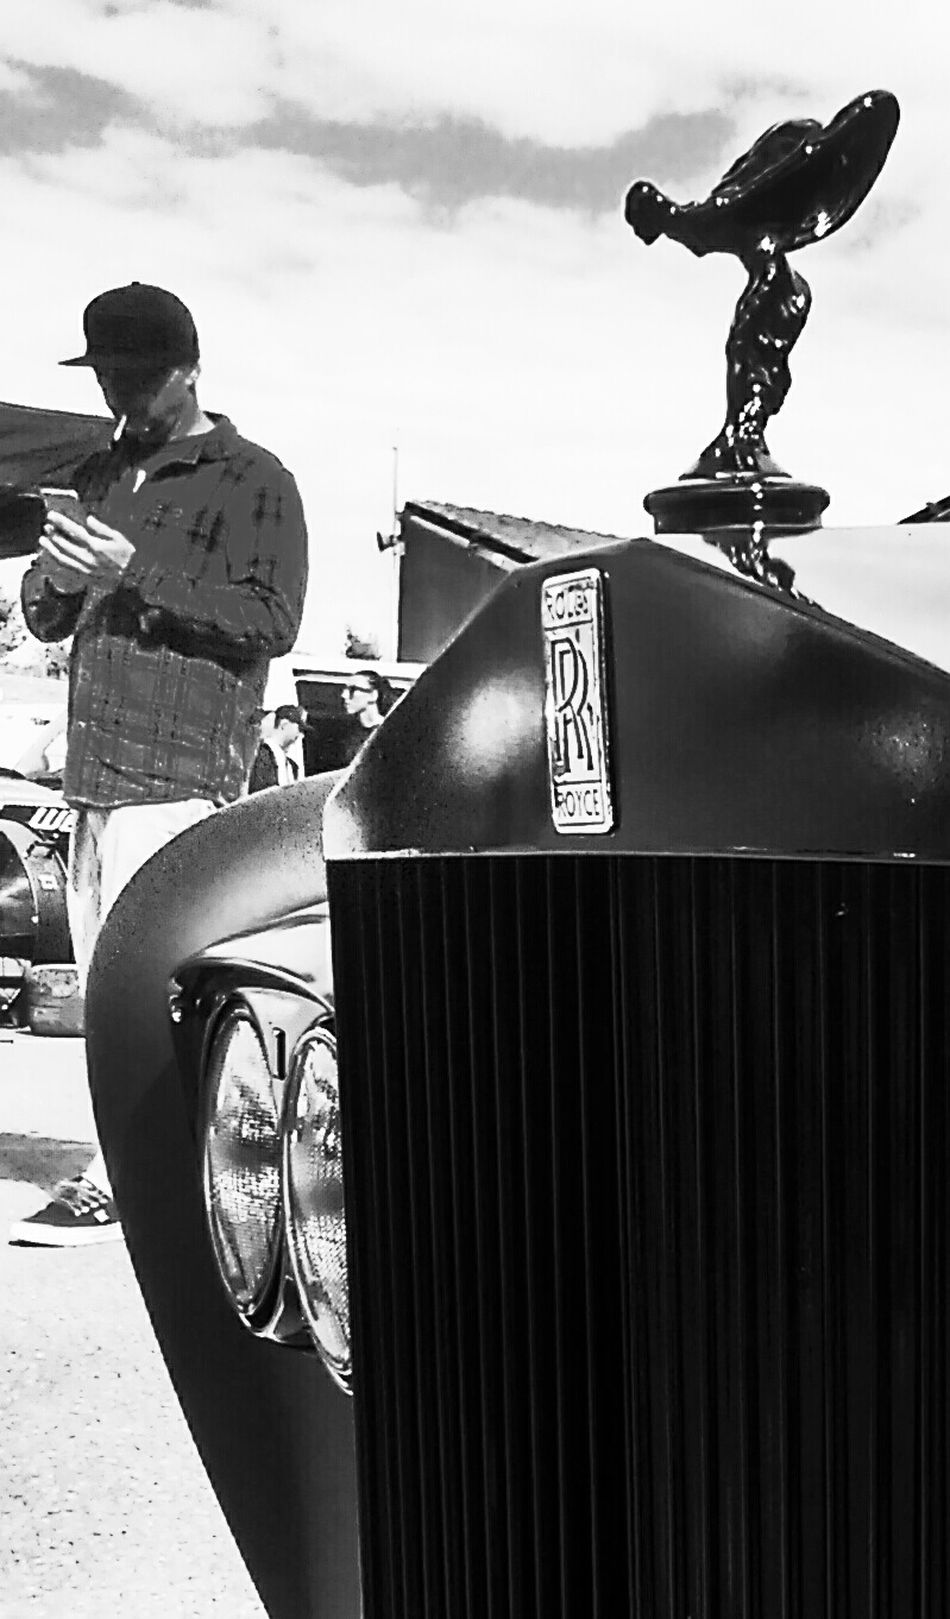 Rolls Royce Roller Spirit Of Ecstasy People Watching Car Blackandwhite Black And White Black Classic Classy Classic Car Grunge GrungeStyle Alternative Hanging Out Check This Out Enjoying Life Hi! Streetphotography Cool Candid British Best Of British Cheese! Beautiful